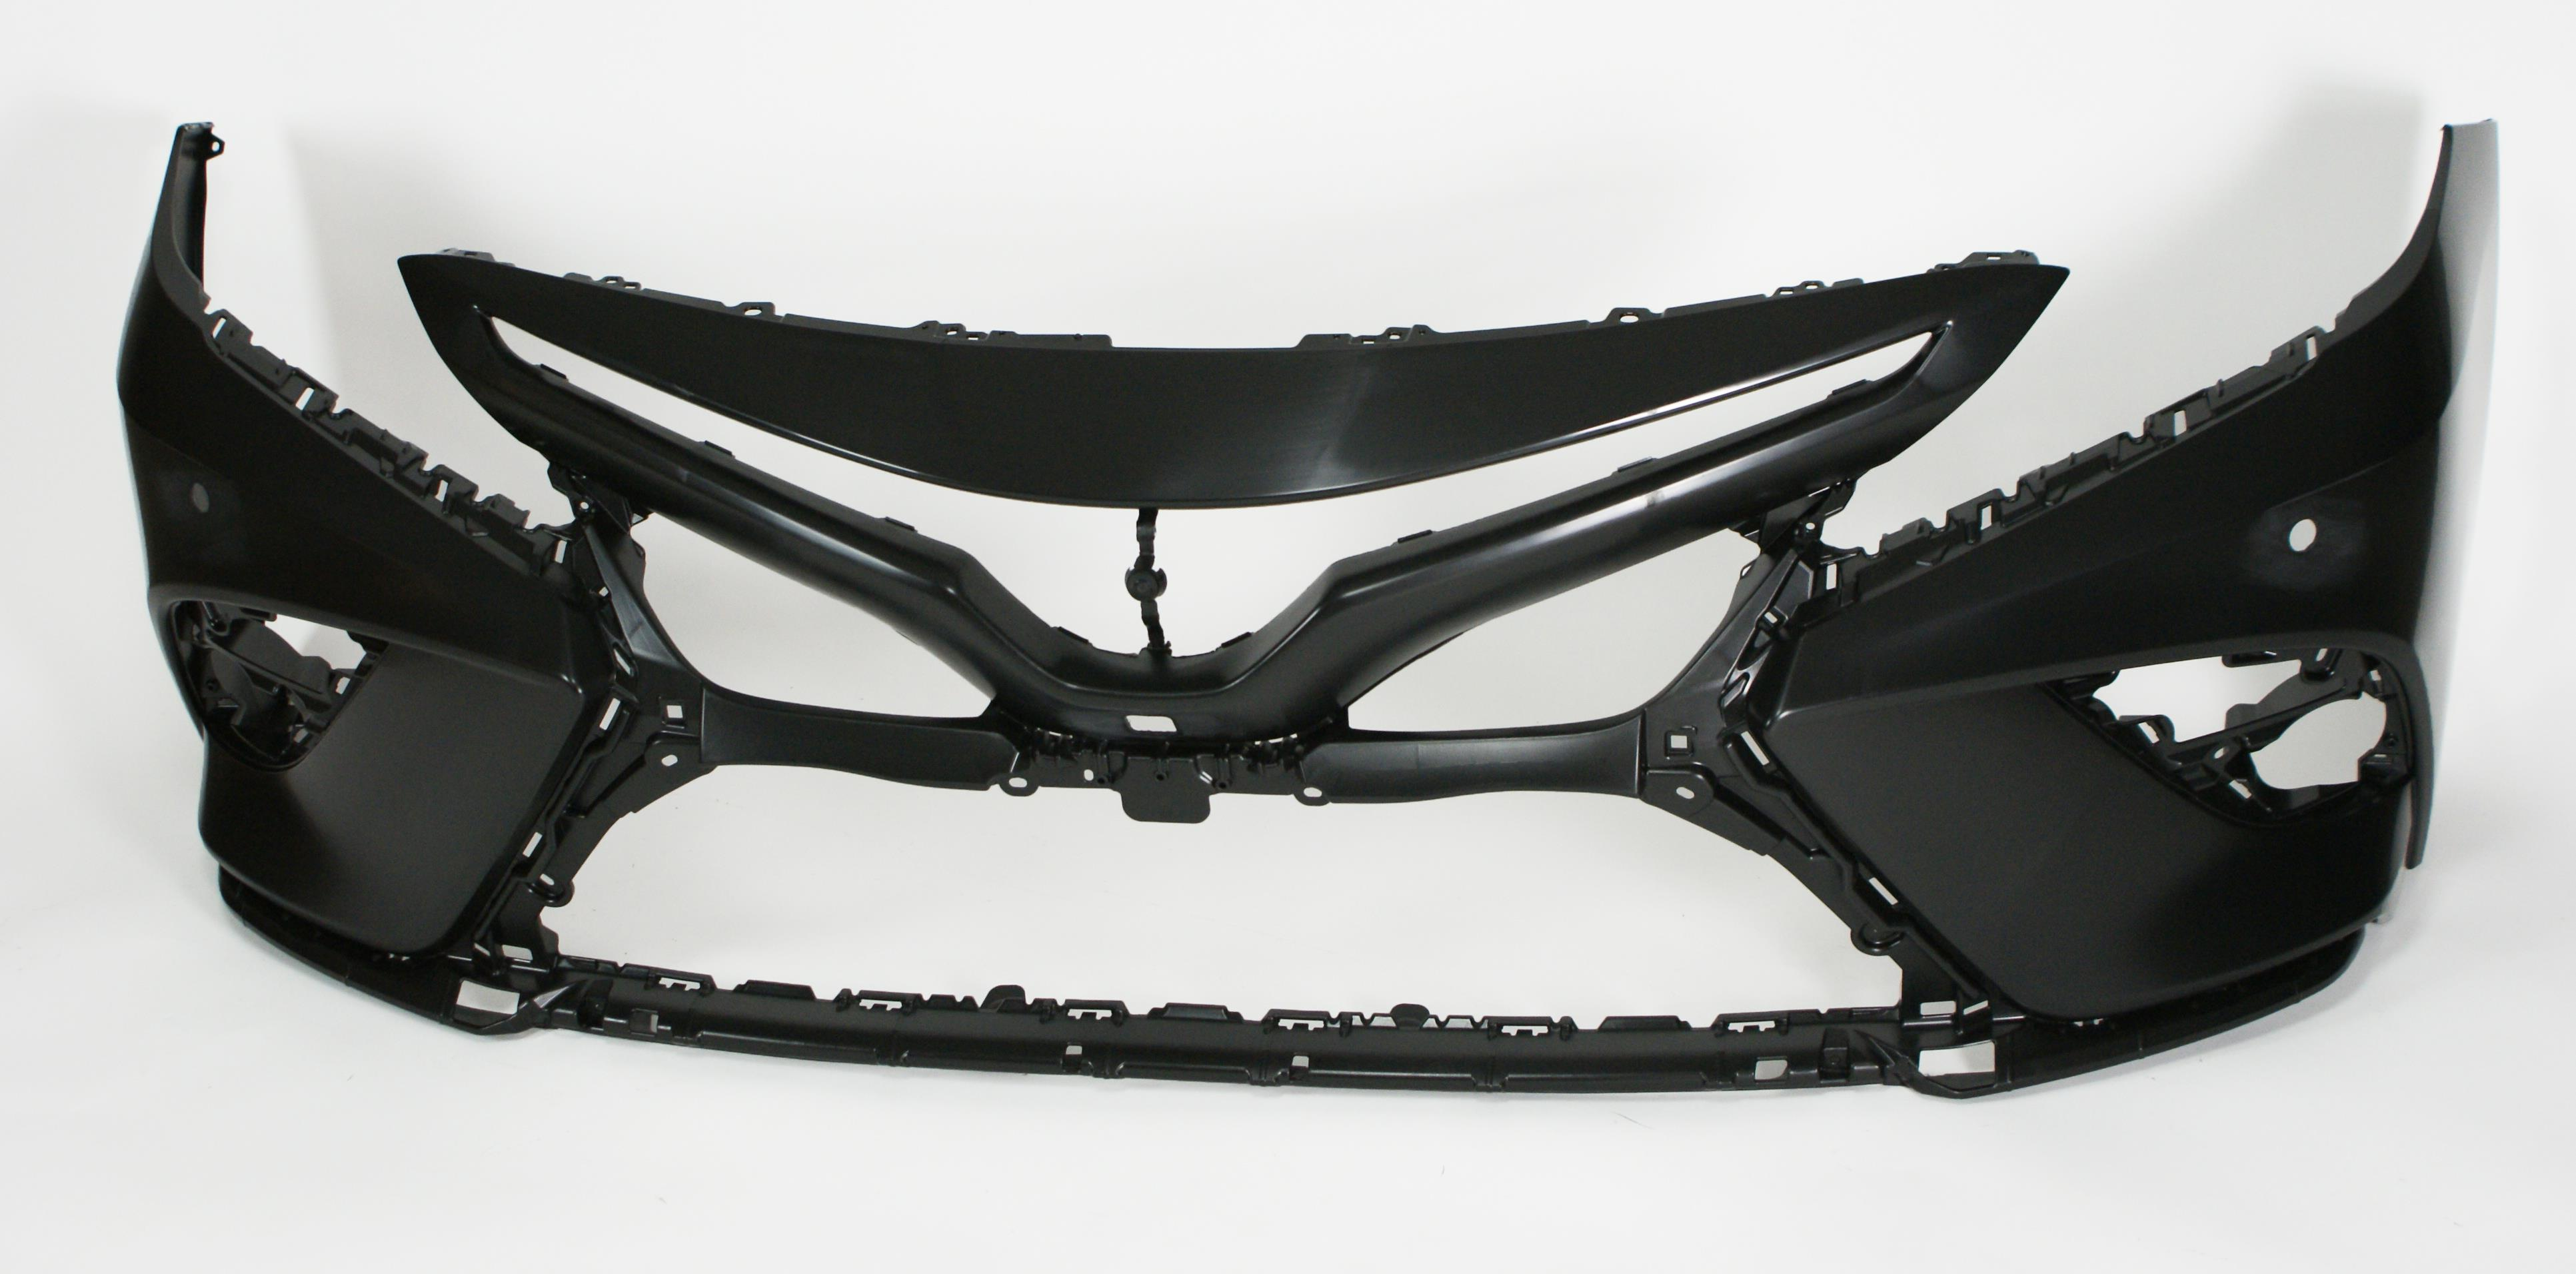 Toyota Camry Bumper Cover  Front   Assist  Package  Alert